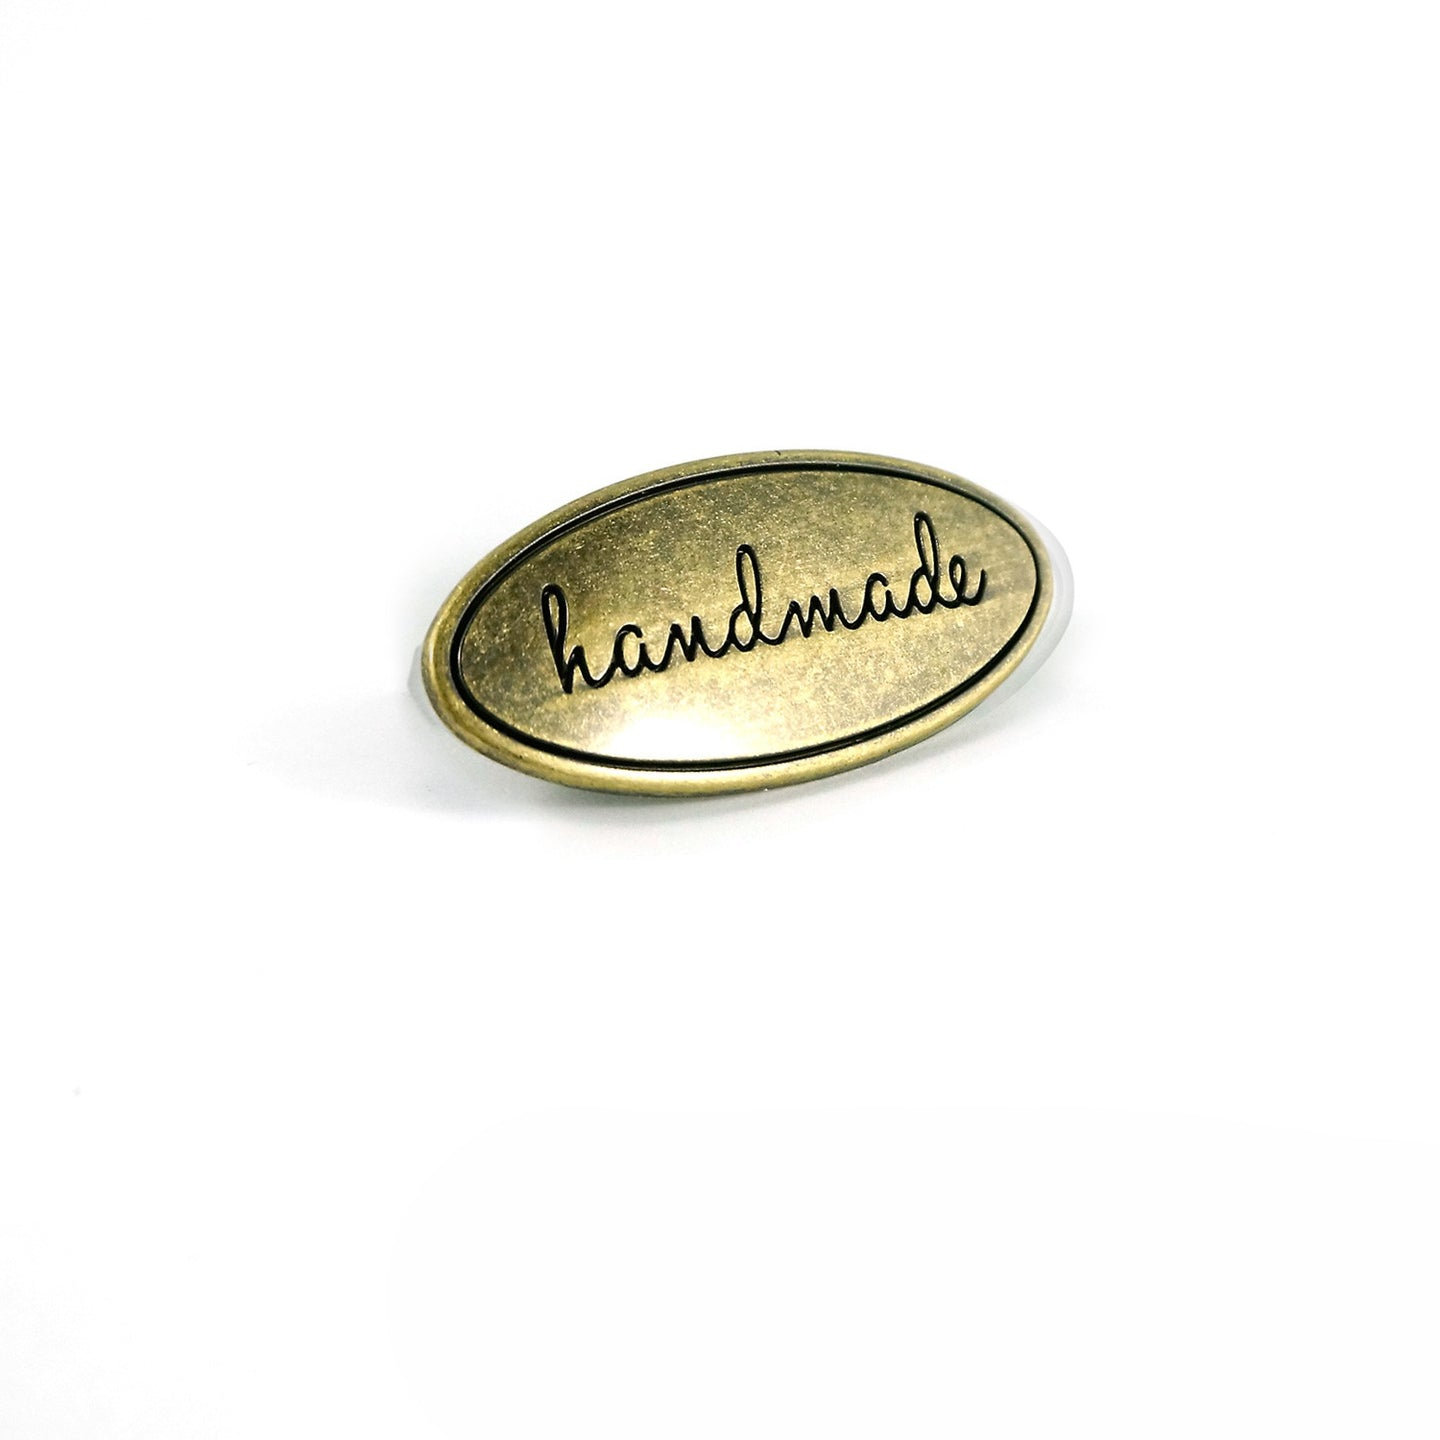 Metal Bag Label - Oval - Handmade in Antique Brass